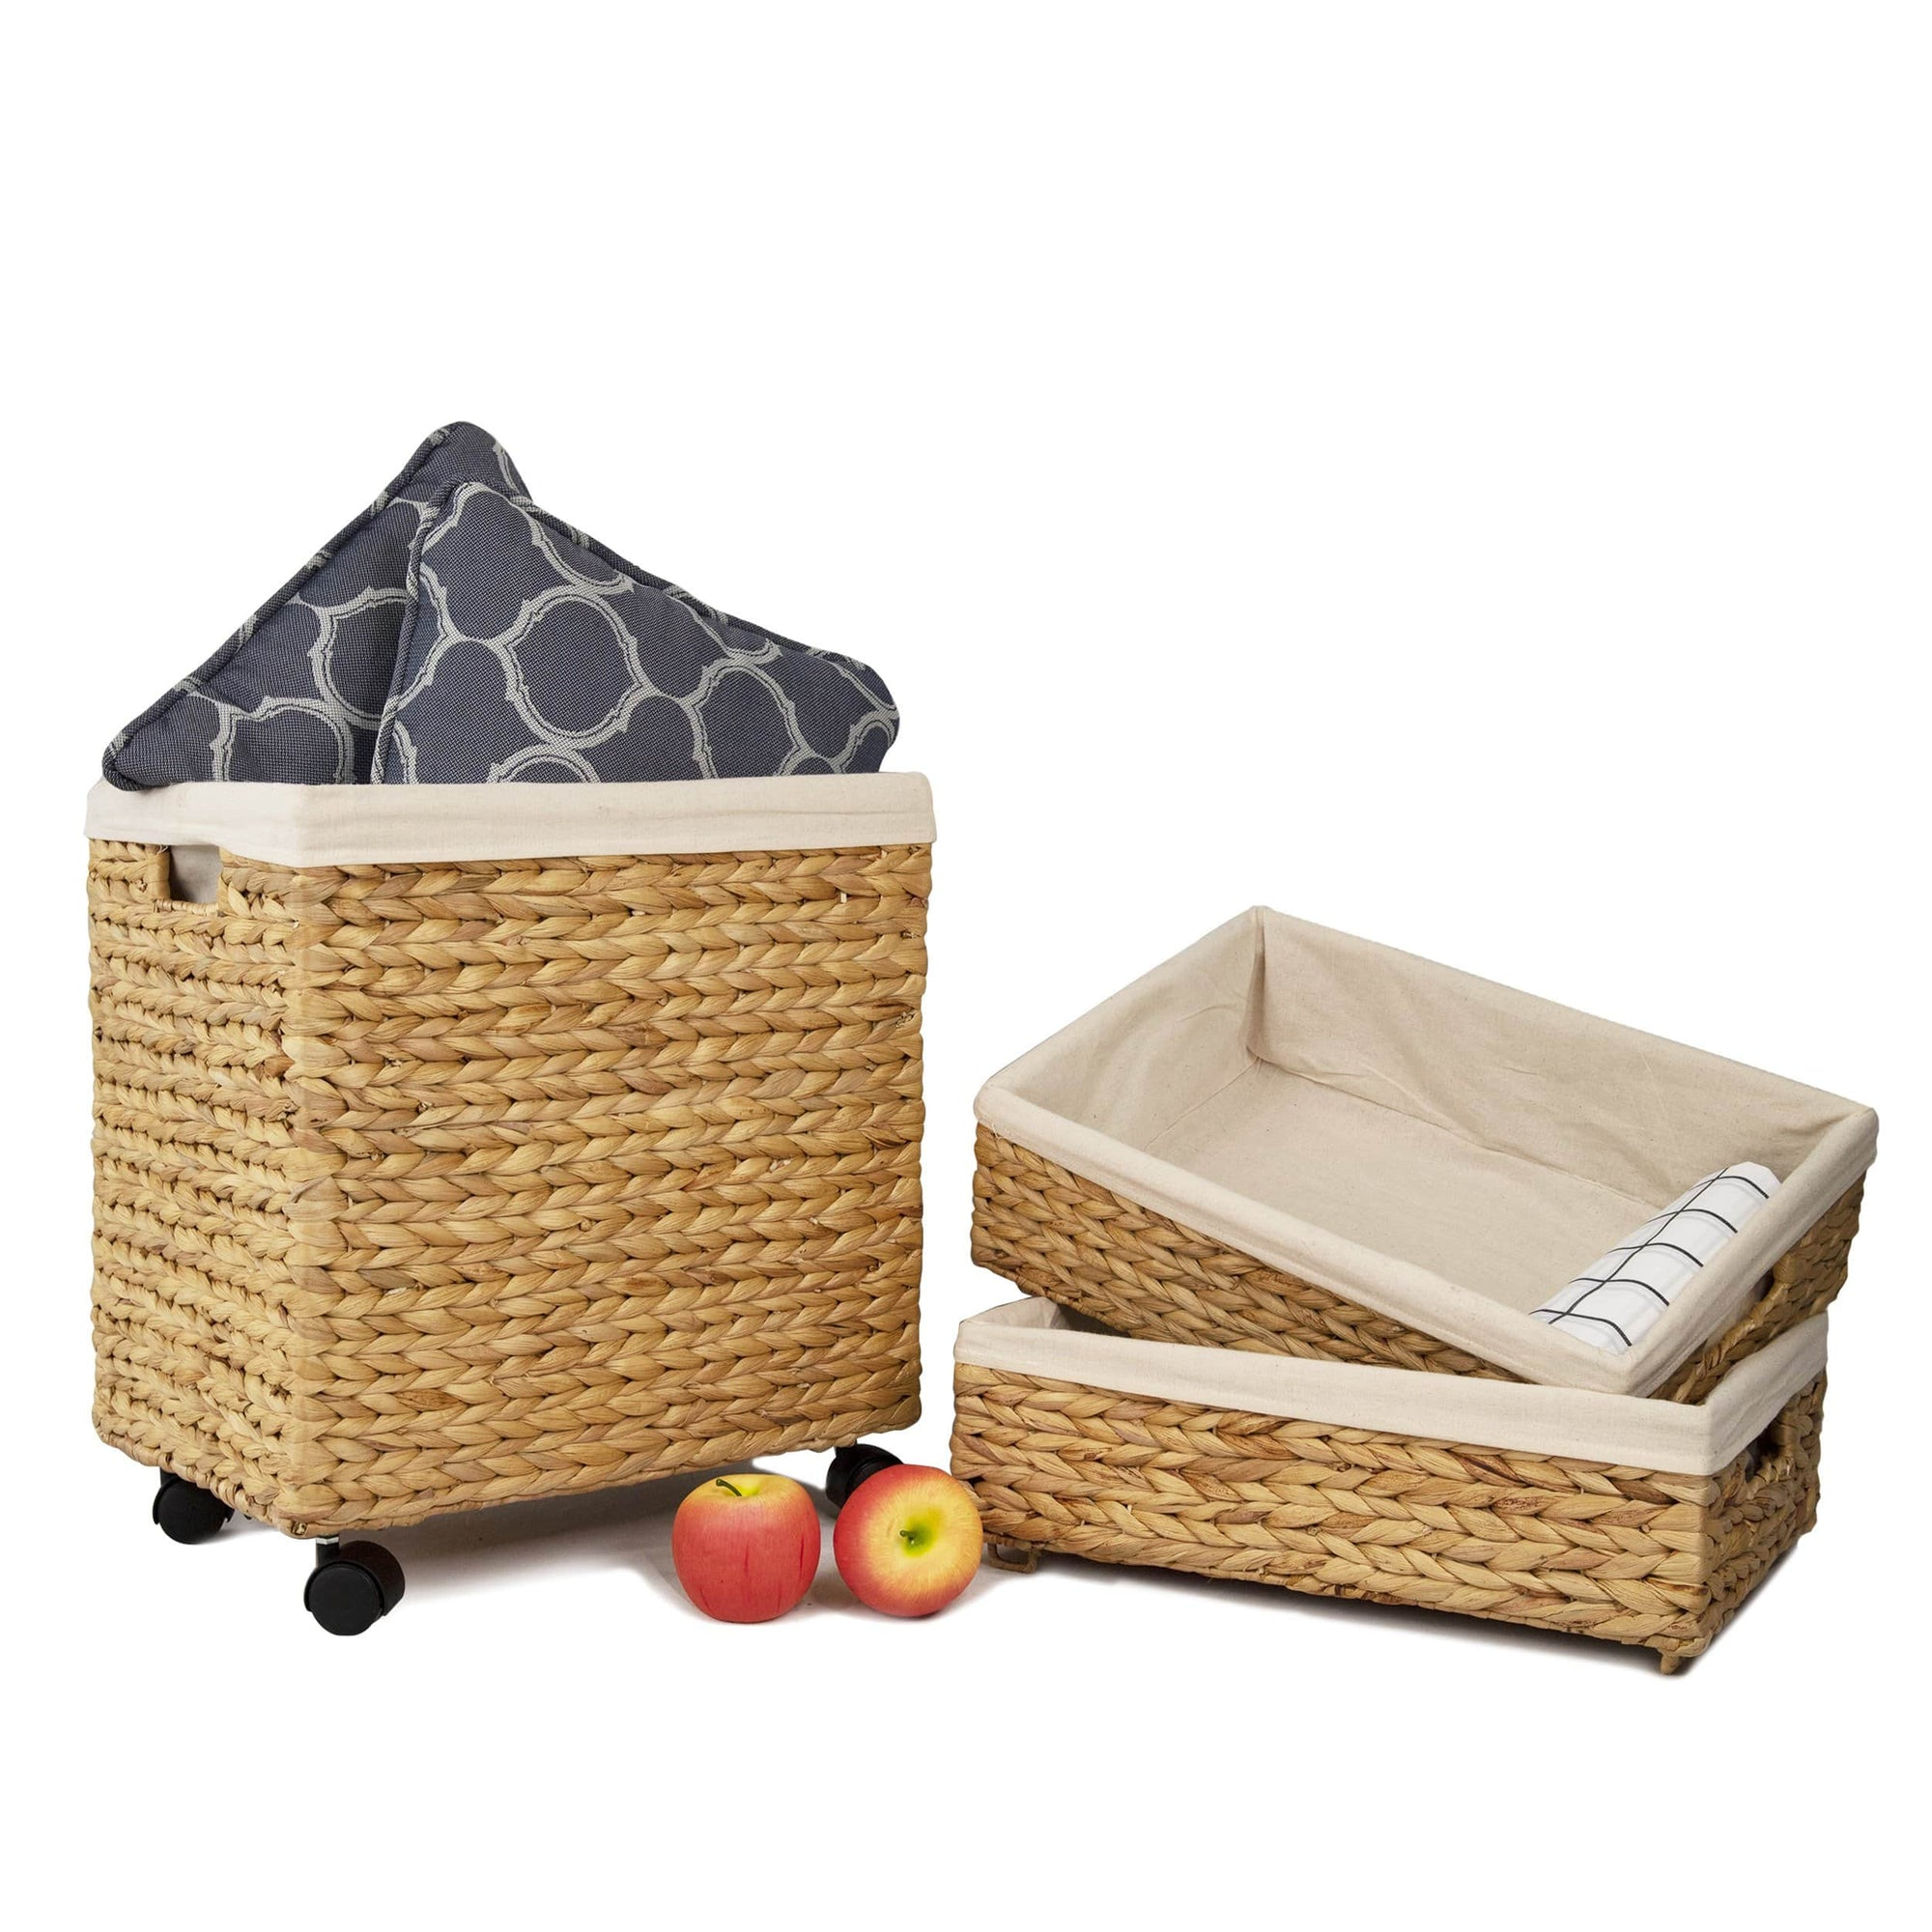 Made Terra Storage basket Woven Wicker Shelf Storage Baskets with Wheels (Set 3) | Decorative Organiser Baskets for Shelves, Bath Beauty Products Organizer